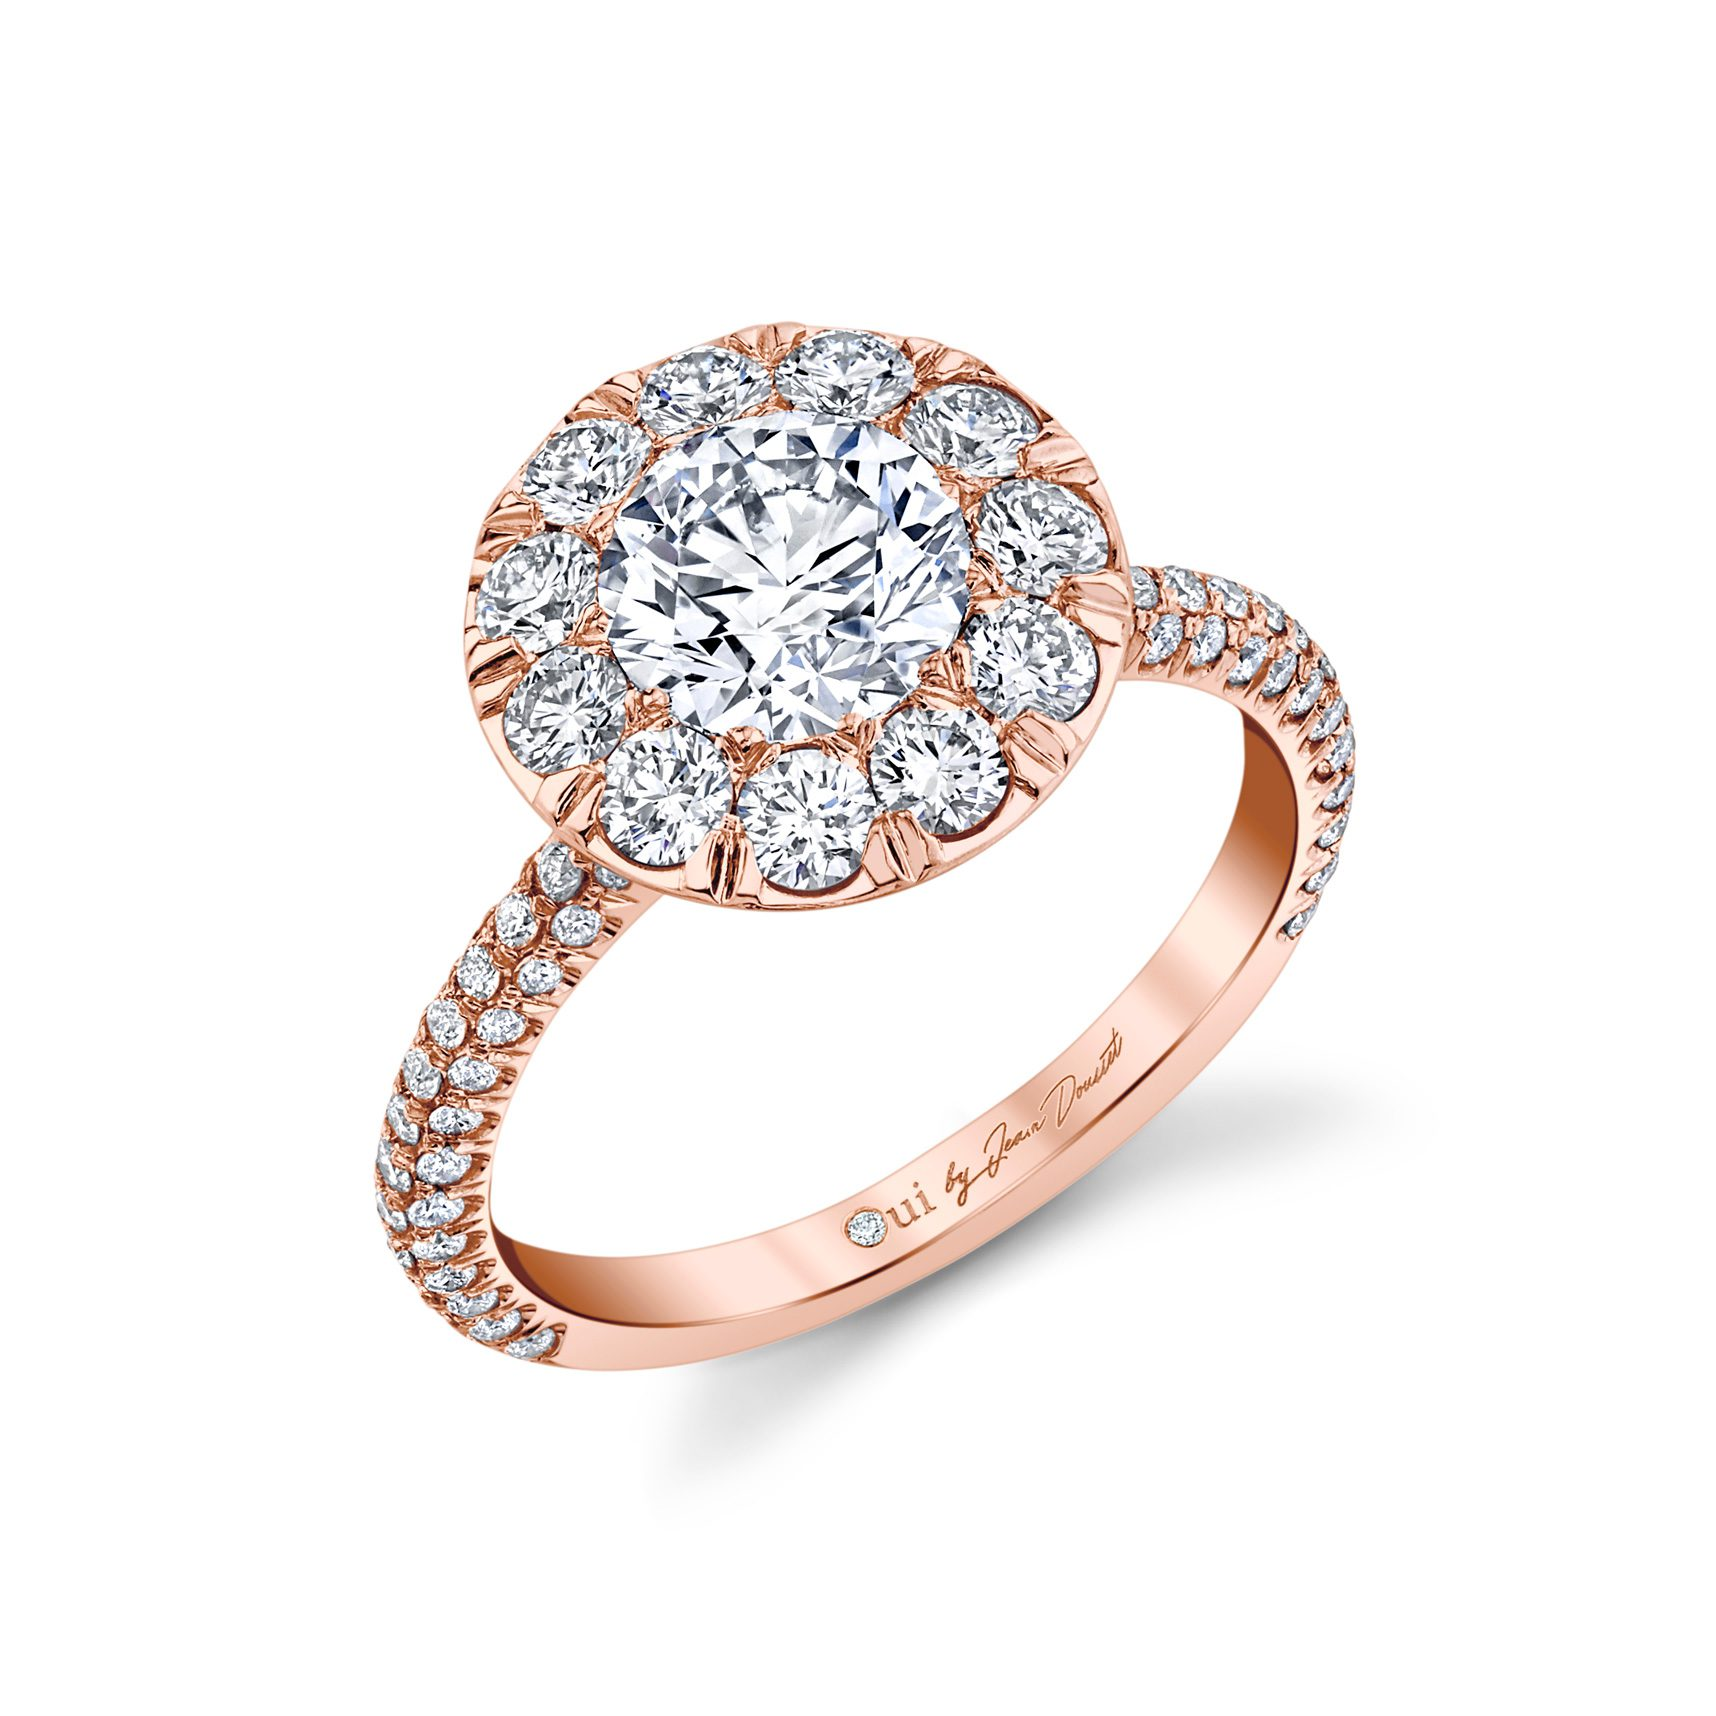 Jacqueline Round Brilliant Seamless Solitaire® Engagement Ring 18k Rose Gold Profile View by Oui by Jean Dousset